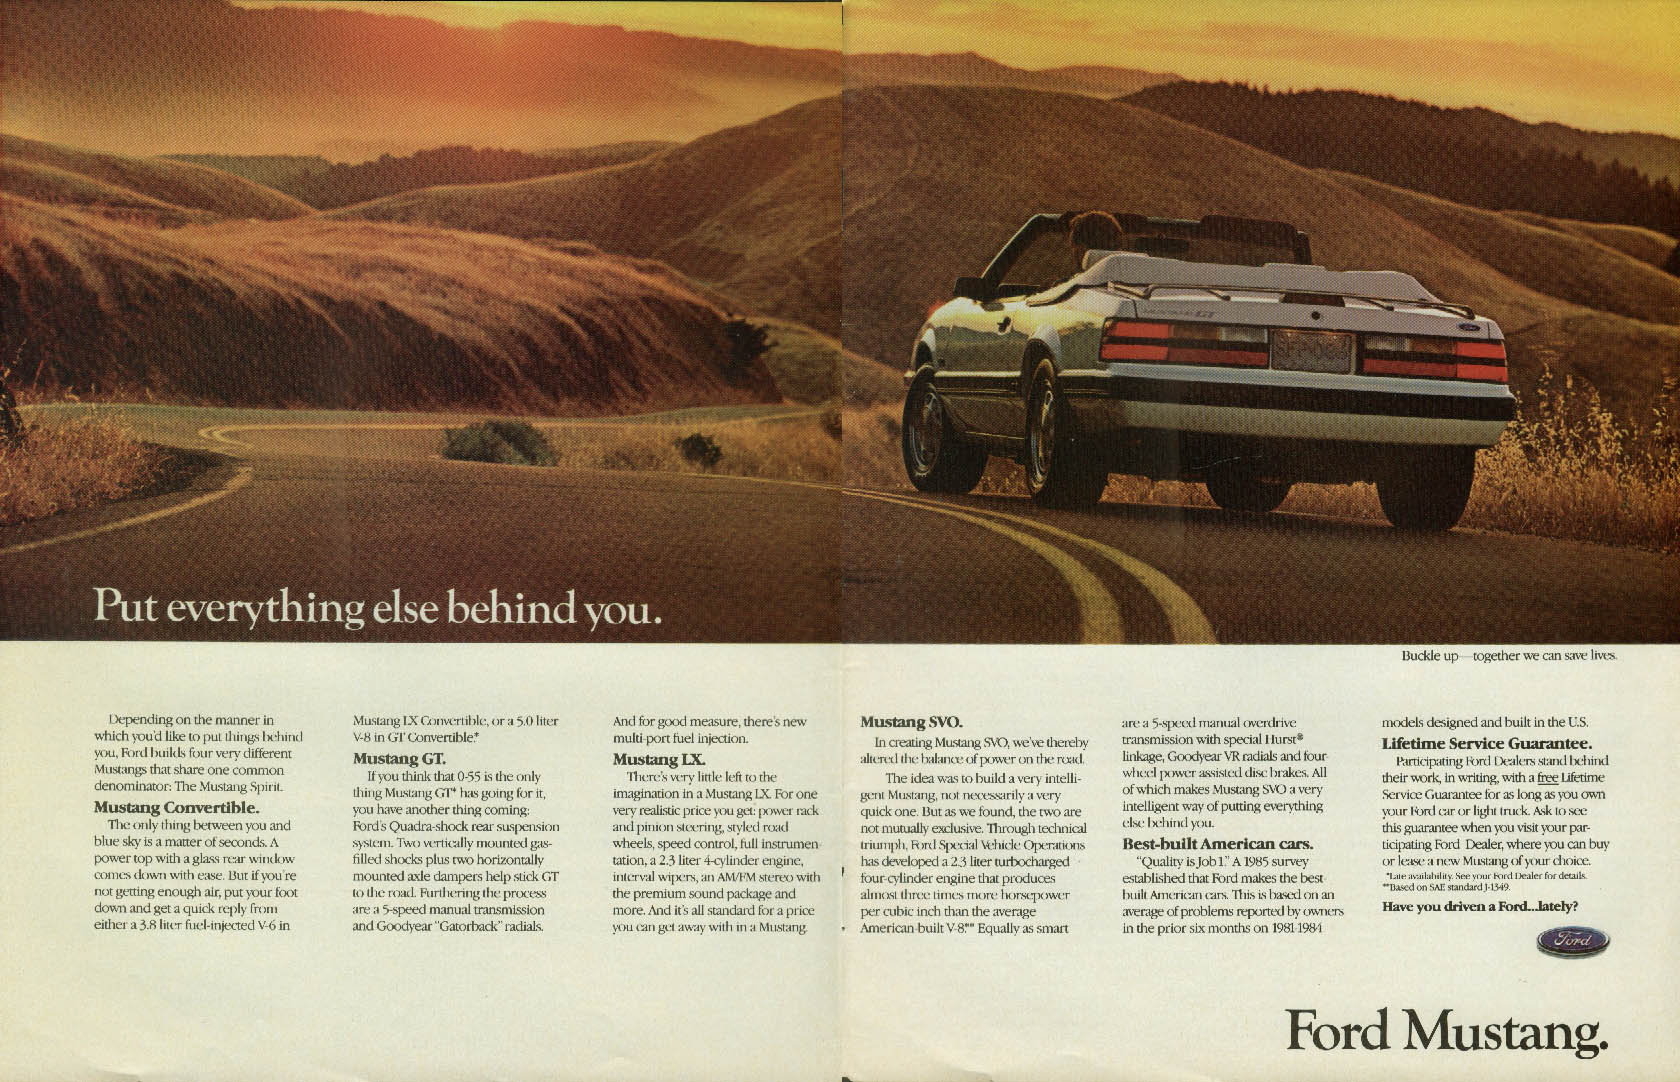 Put everything else behind you. Ford Mustang GT ad 1986